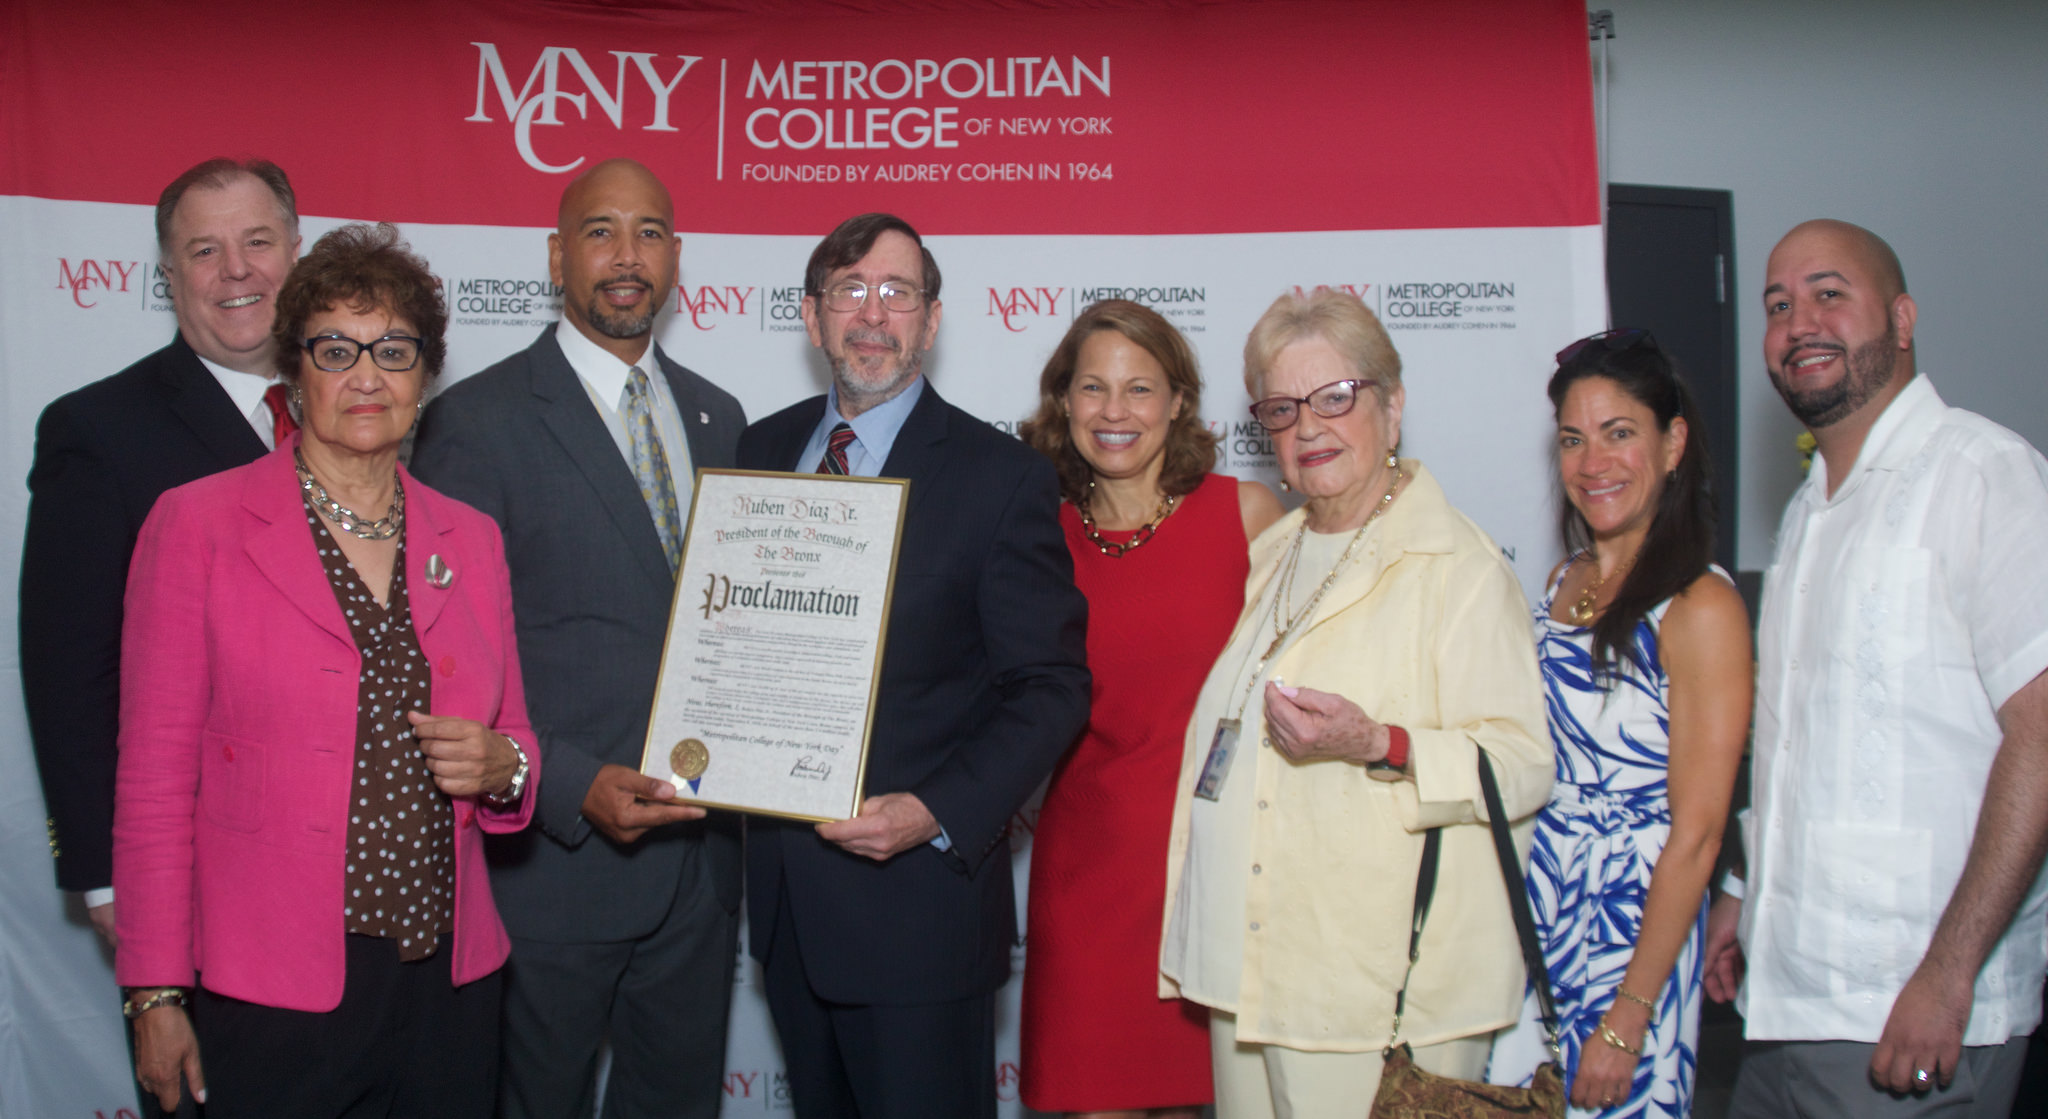 Metropolitan College of New York Unveils State-of-the-Art Bronx Campus